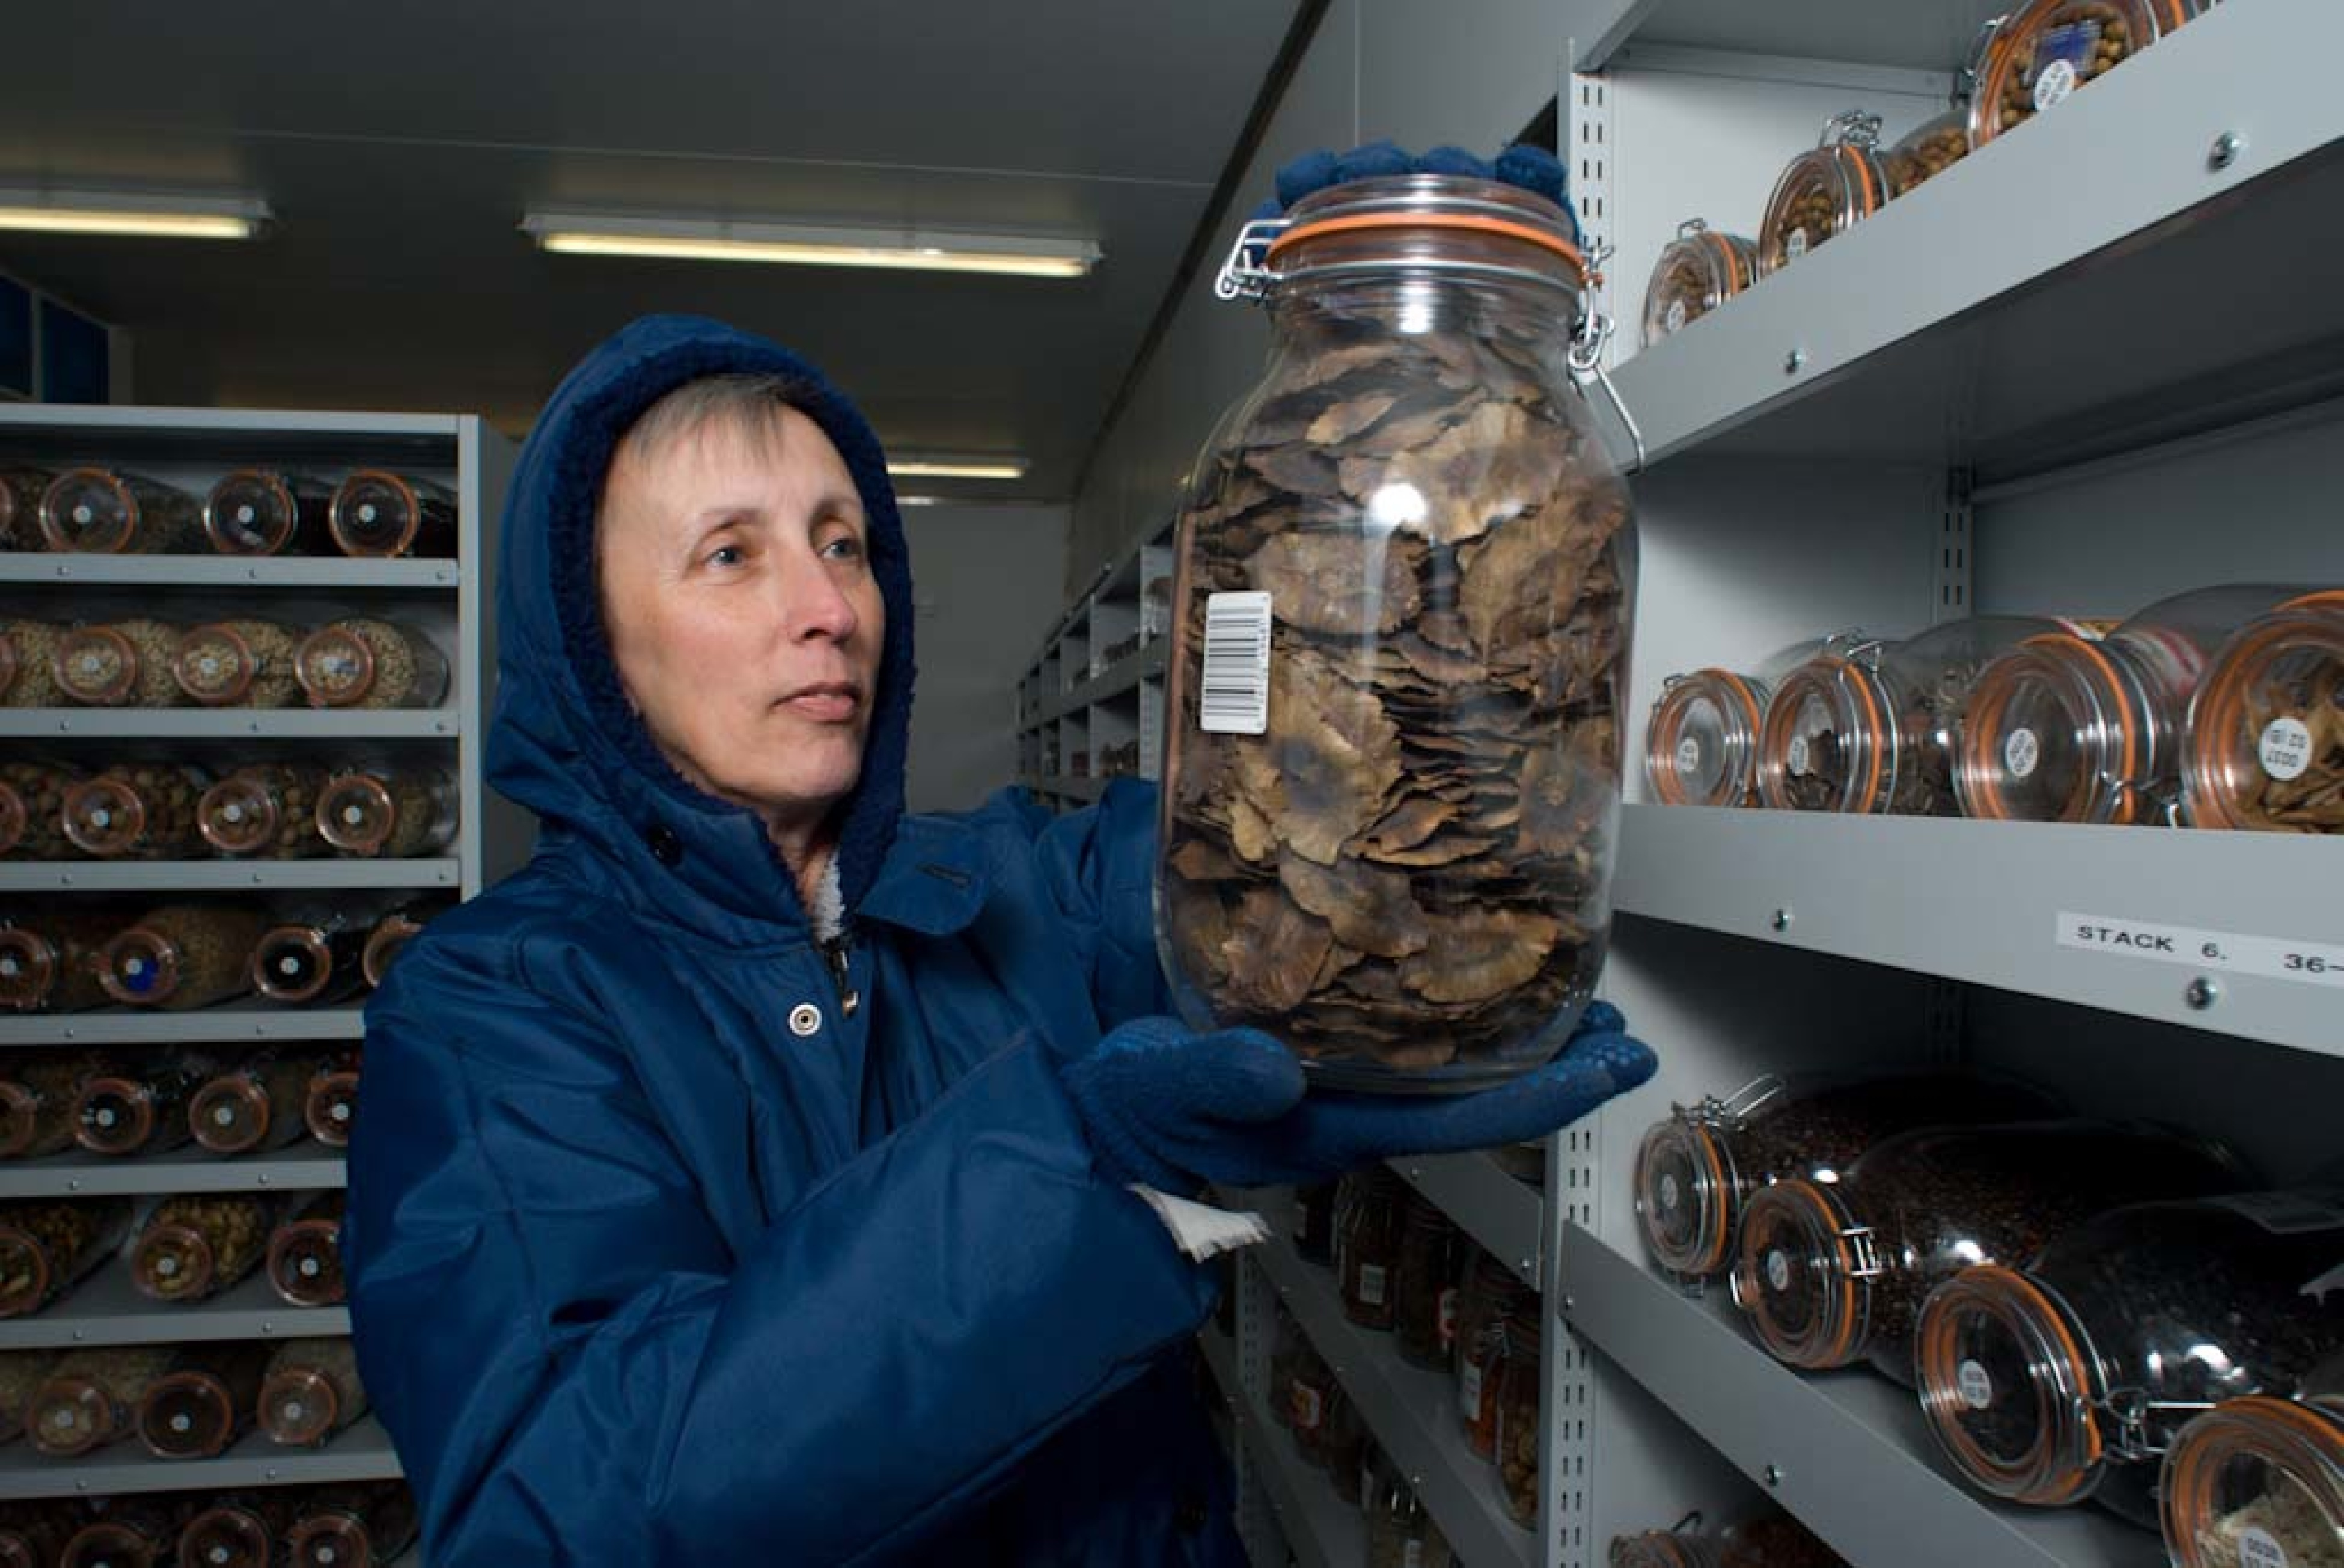 Researcher in the MSB cold rooms holding a jar of seeds